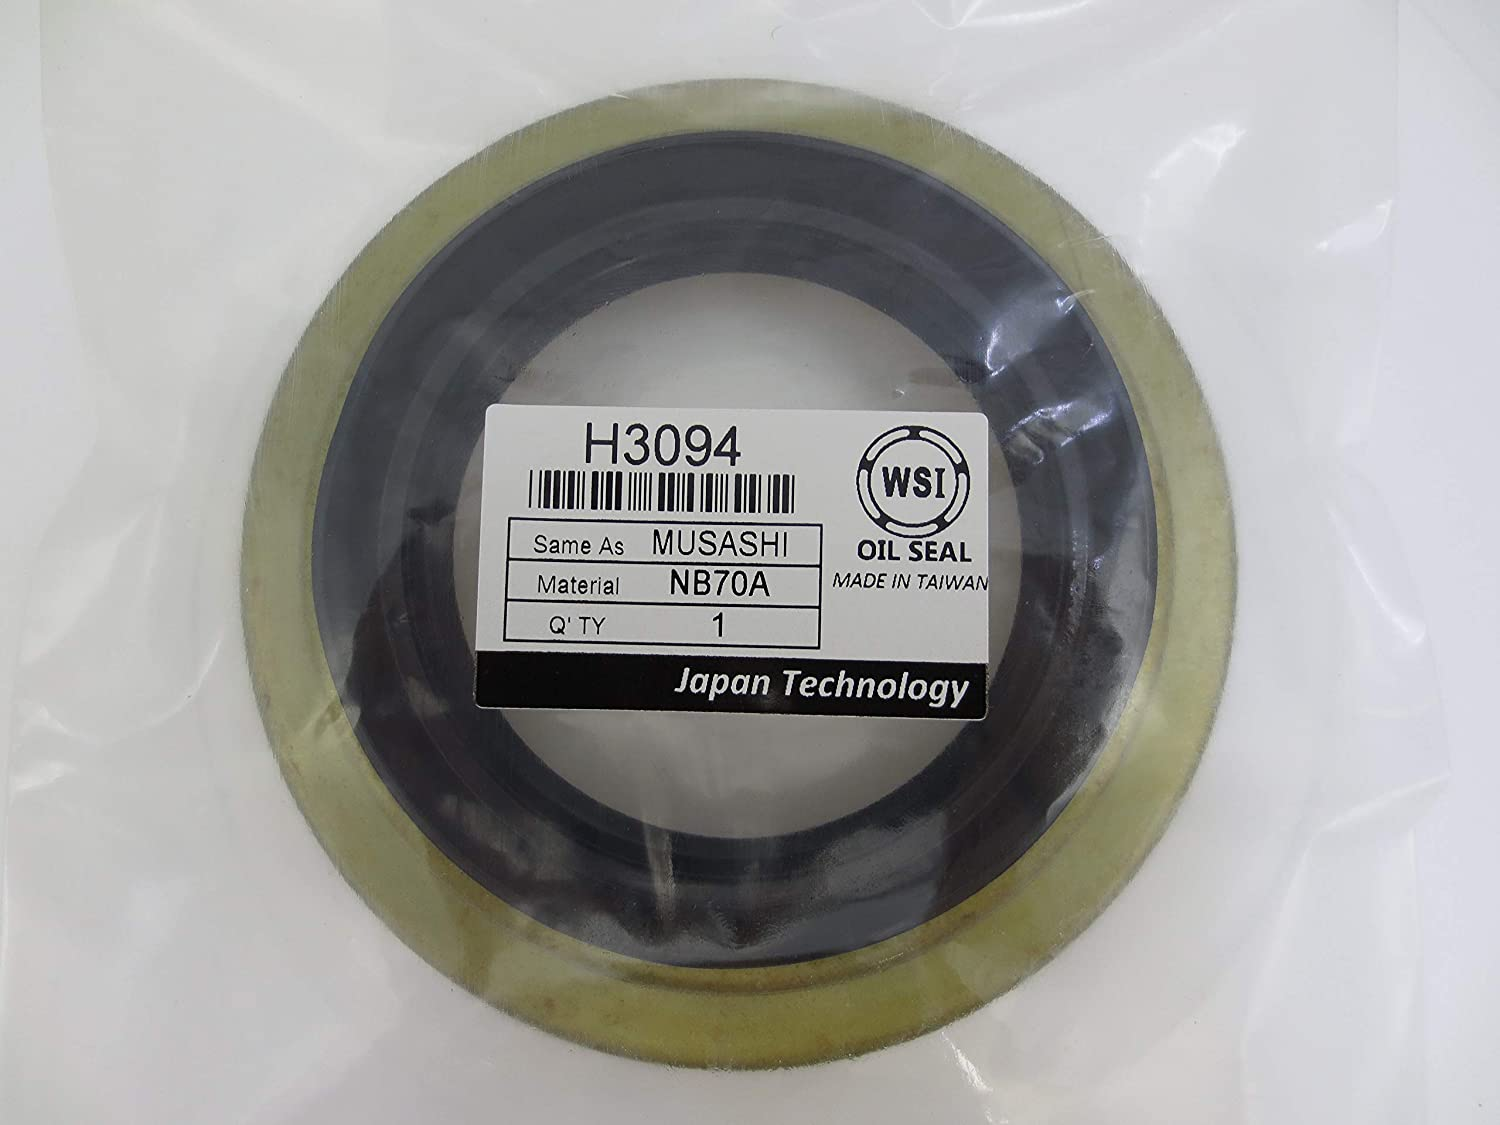 WSI H3094 Truck Oil Seal 25% OFF Max 59% OFF Musashi for